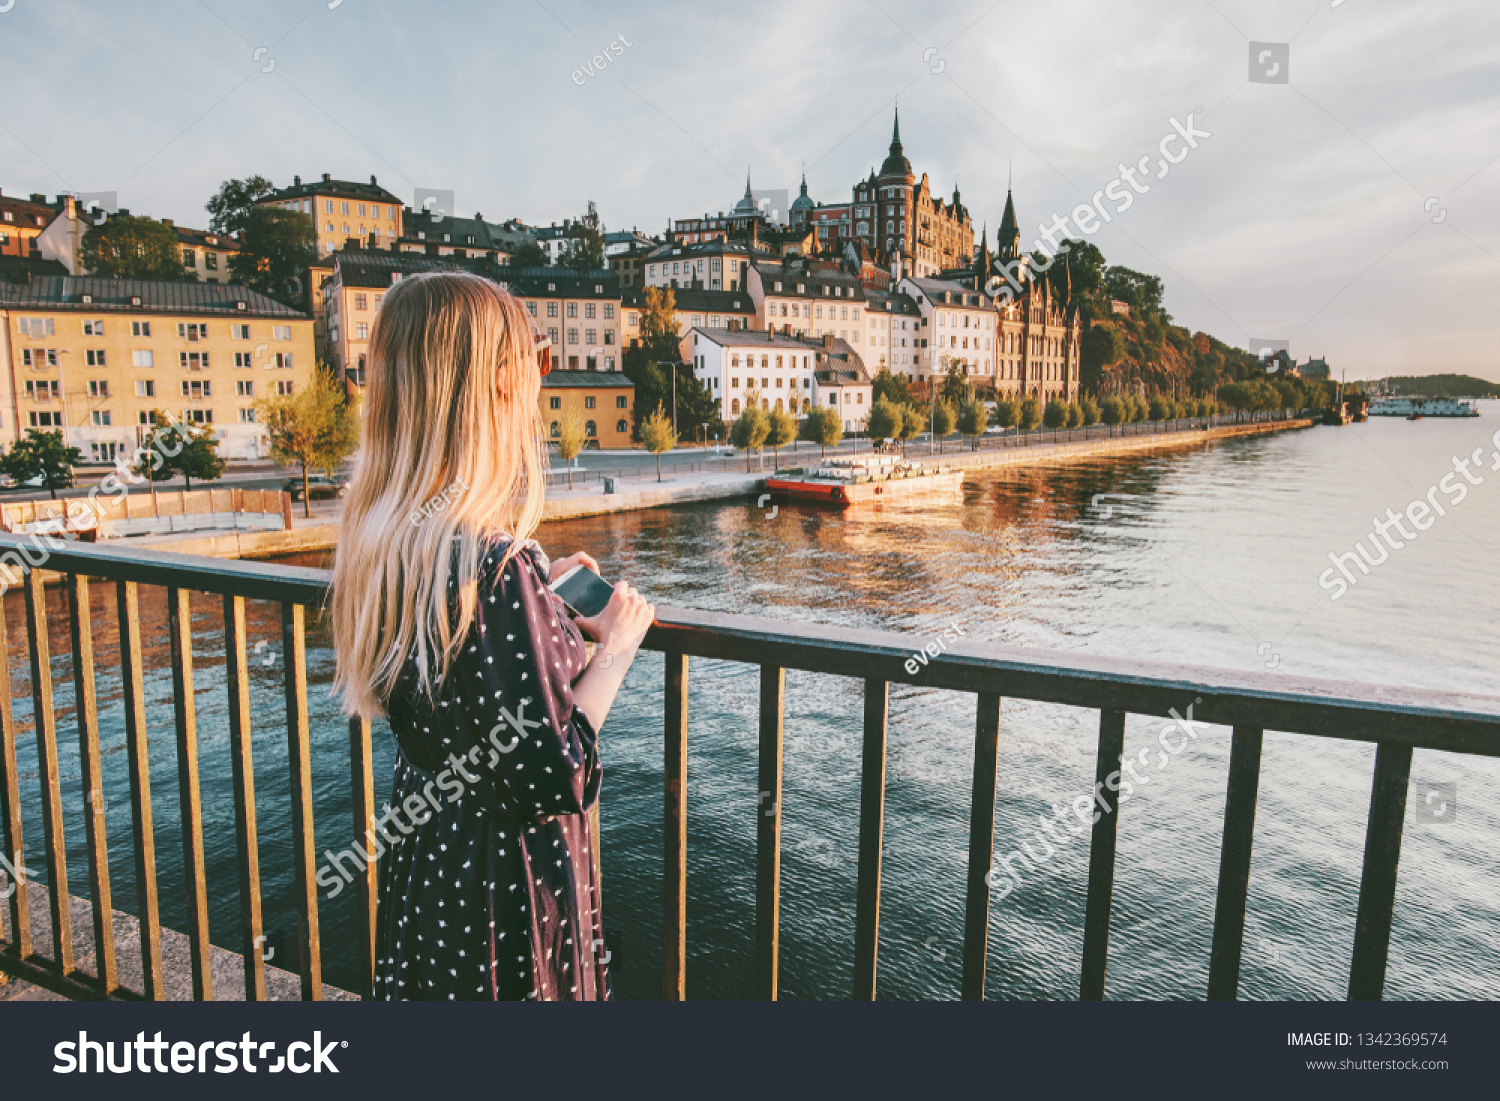 Tourist woman sightseeing Stockholm city enjoying view traveling lifestyle summer vacations in Sweden   #1342369574